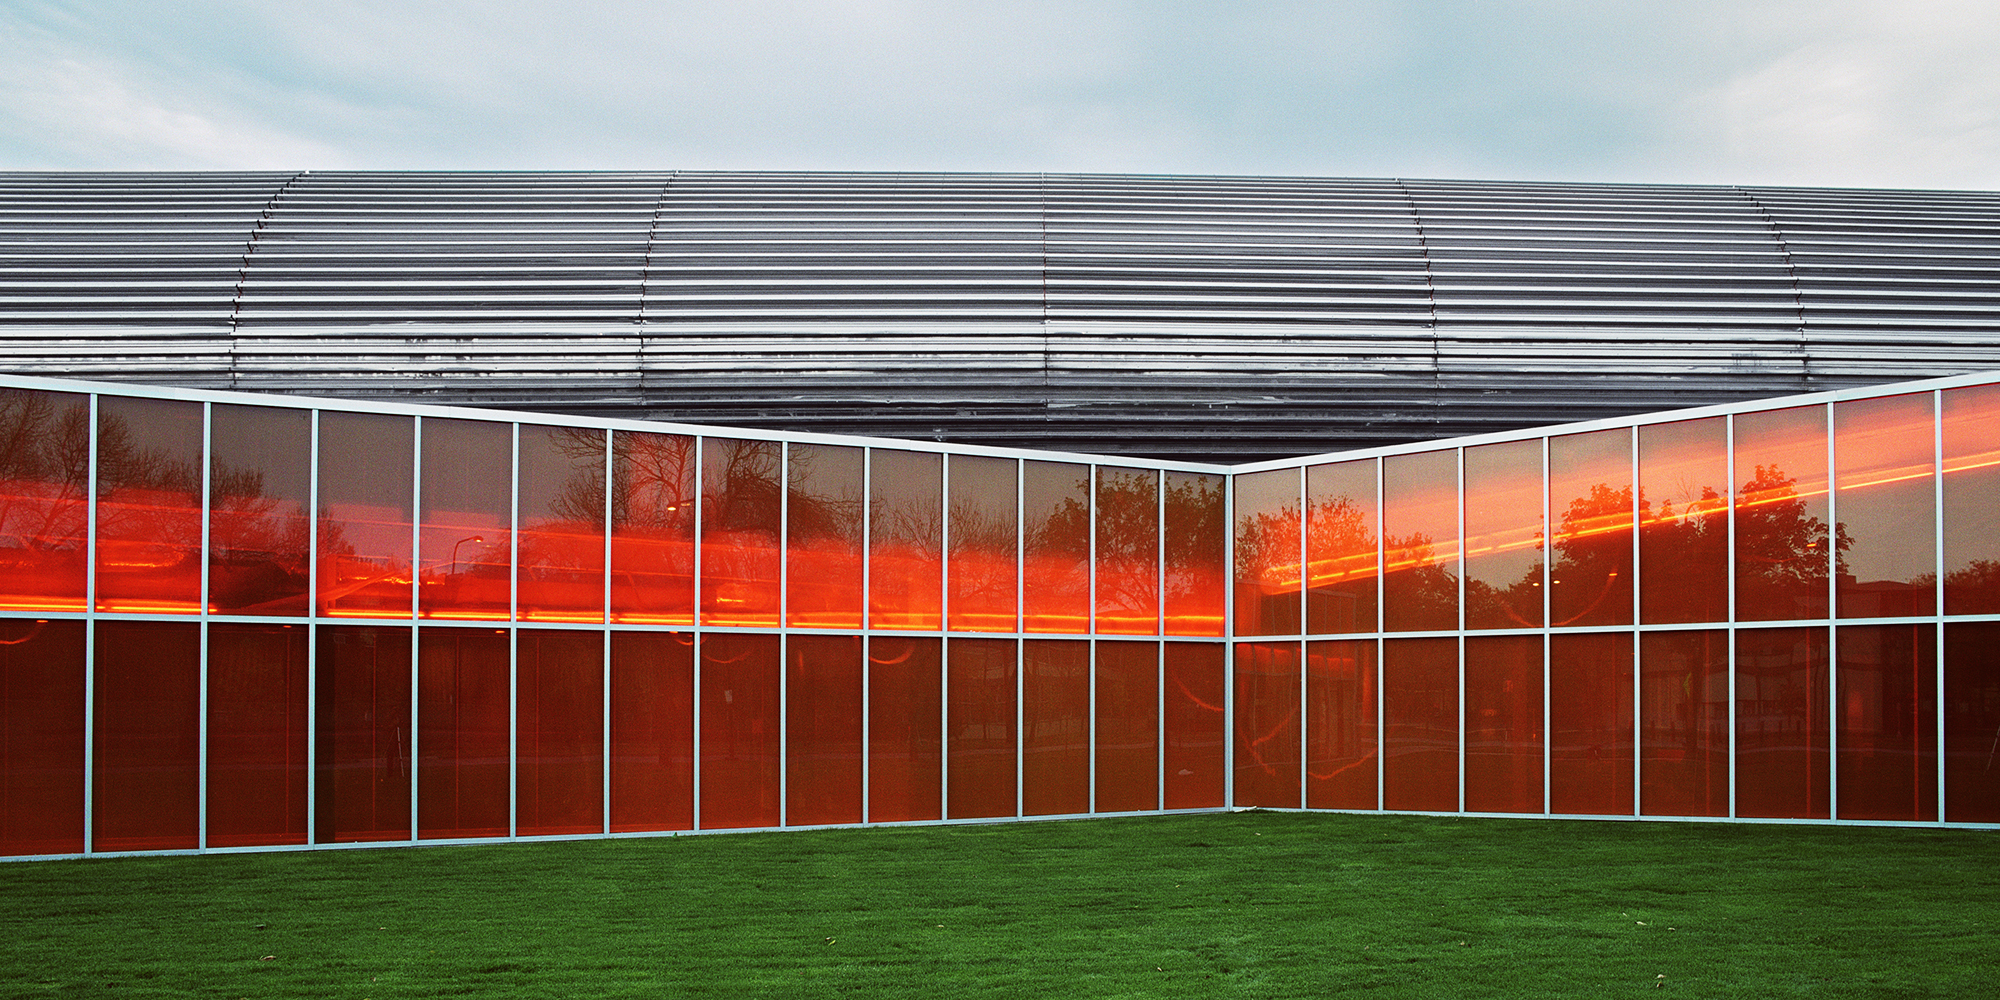 McCormick Tribune Campus Center at Illinois Institute of Technology | Architect: OMA (Office for Metropolitan Architecture) | Photography: Floto + Warner | ClearShade Exterior Glazing